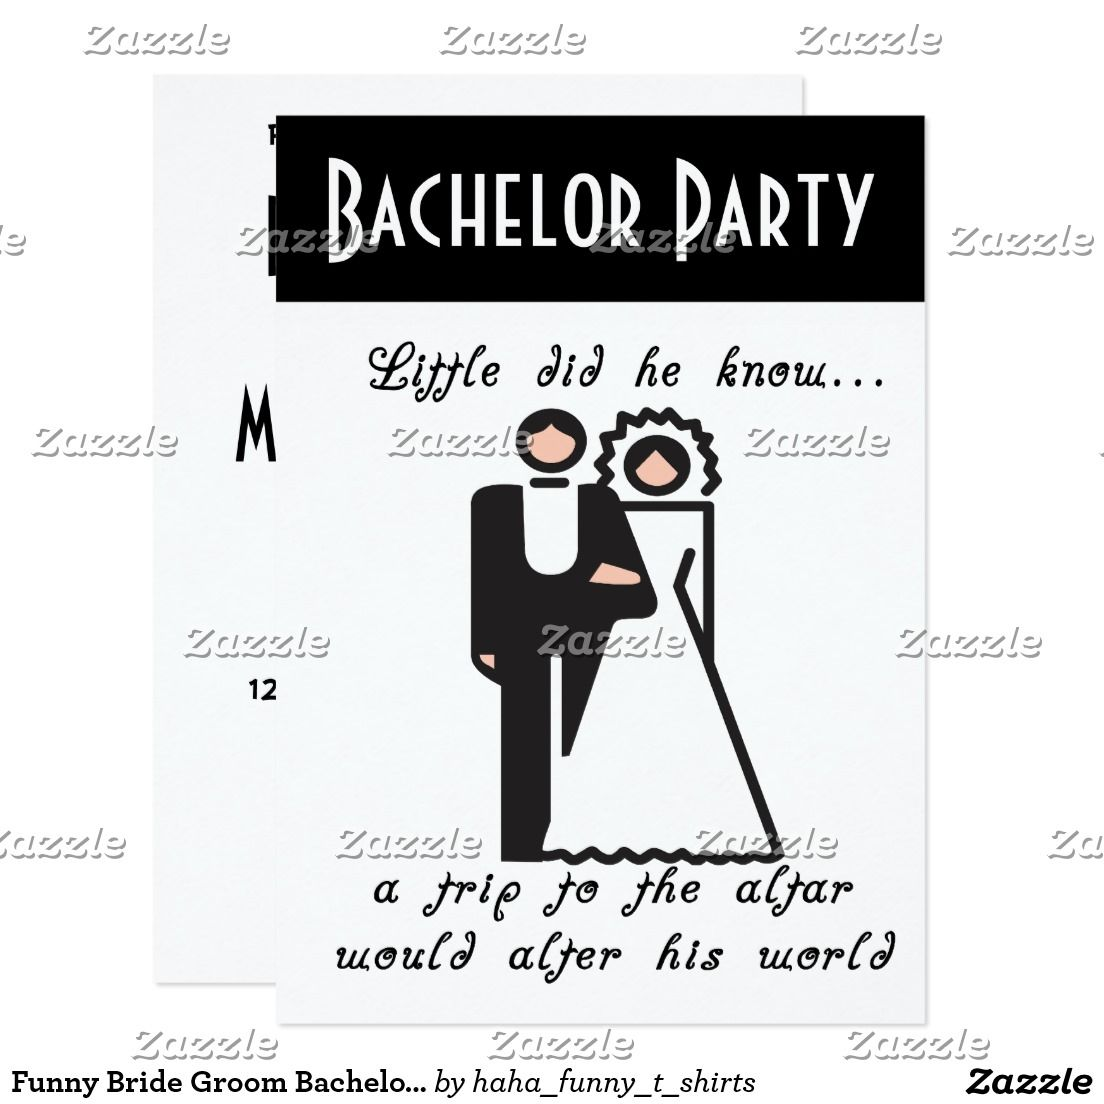 Funny Bride Groom Bachelor Party Invitation | Bachelor Party ...